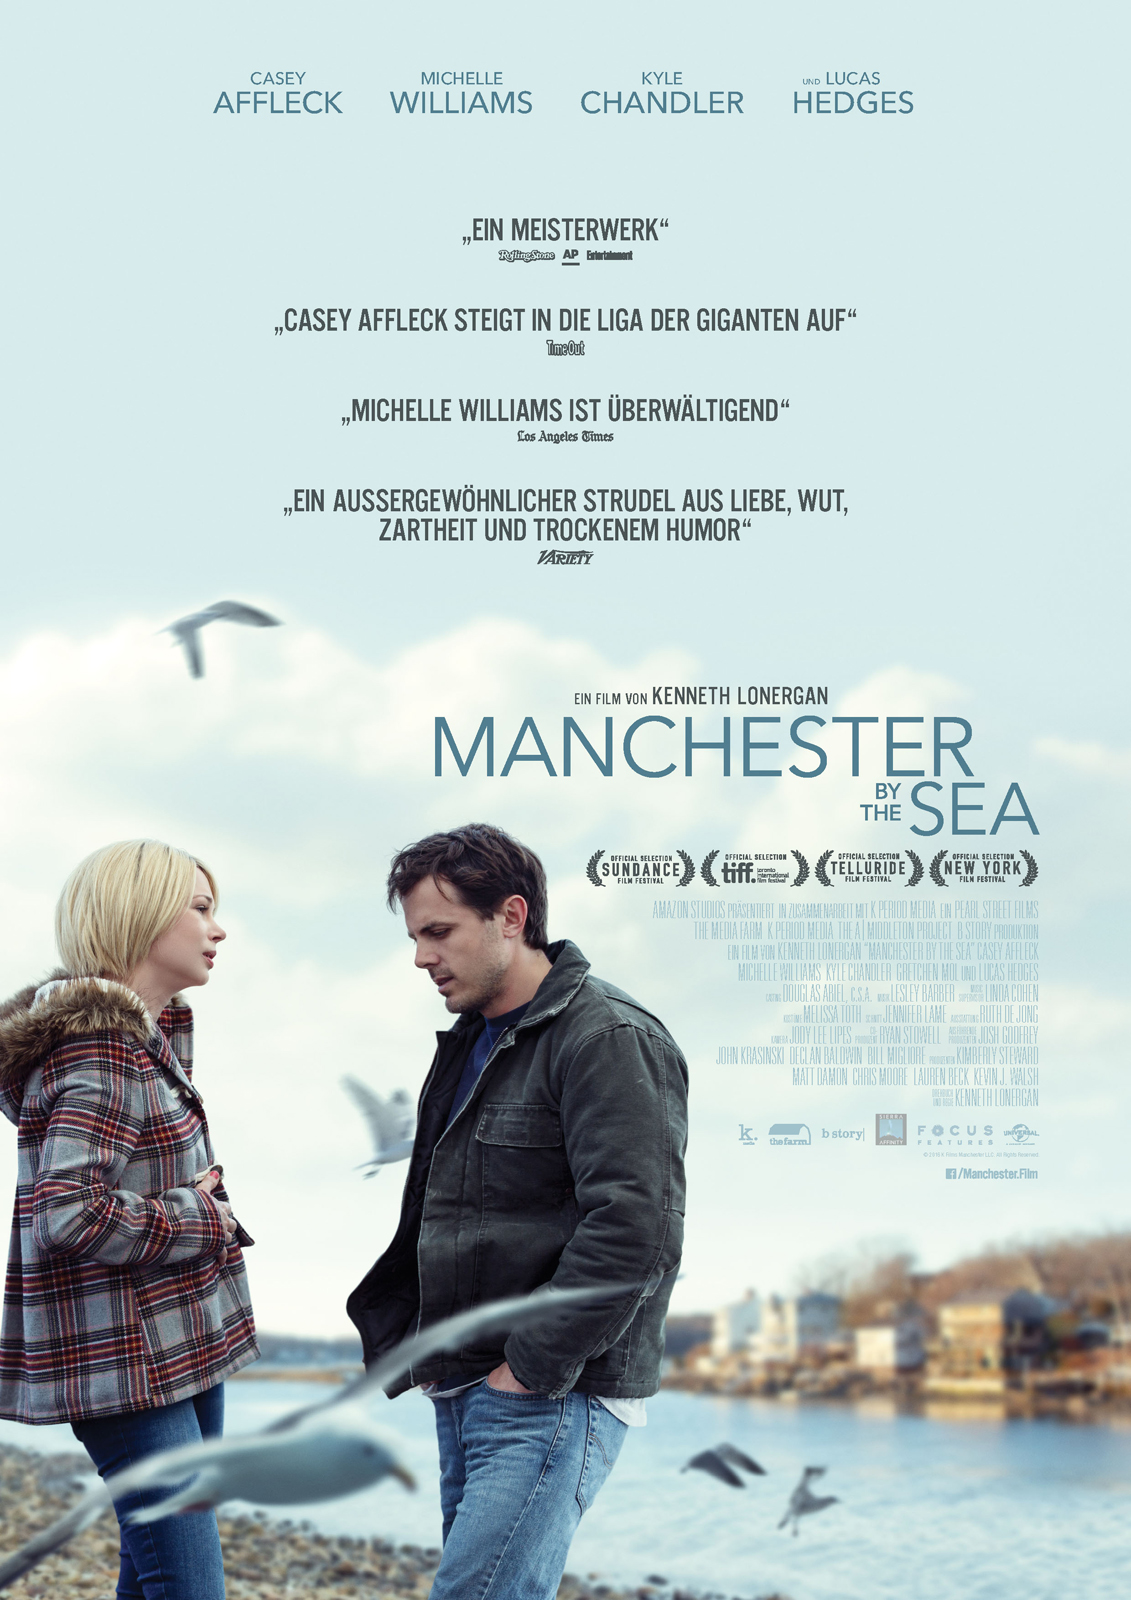 Manchester by the Sea - Film 2016 - FILMSTARTS.de